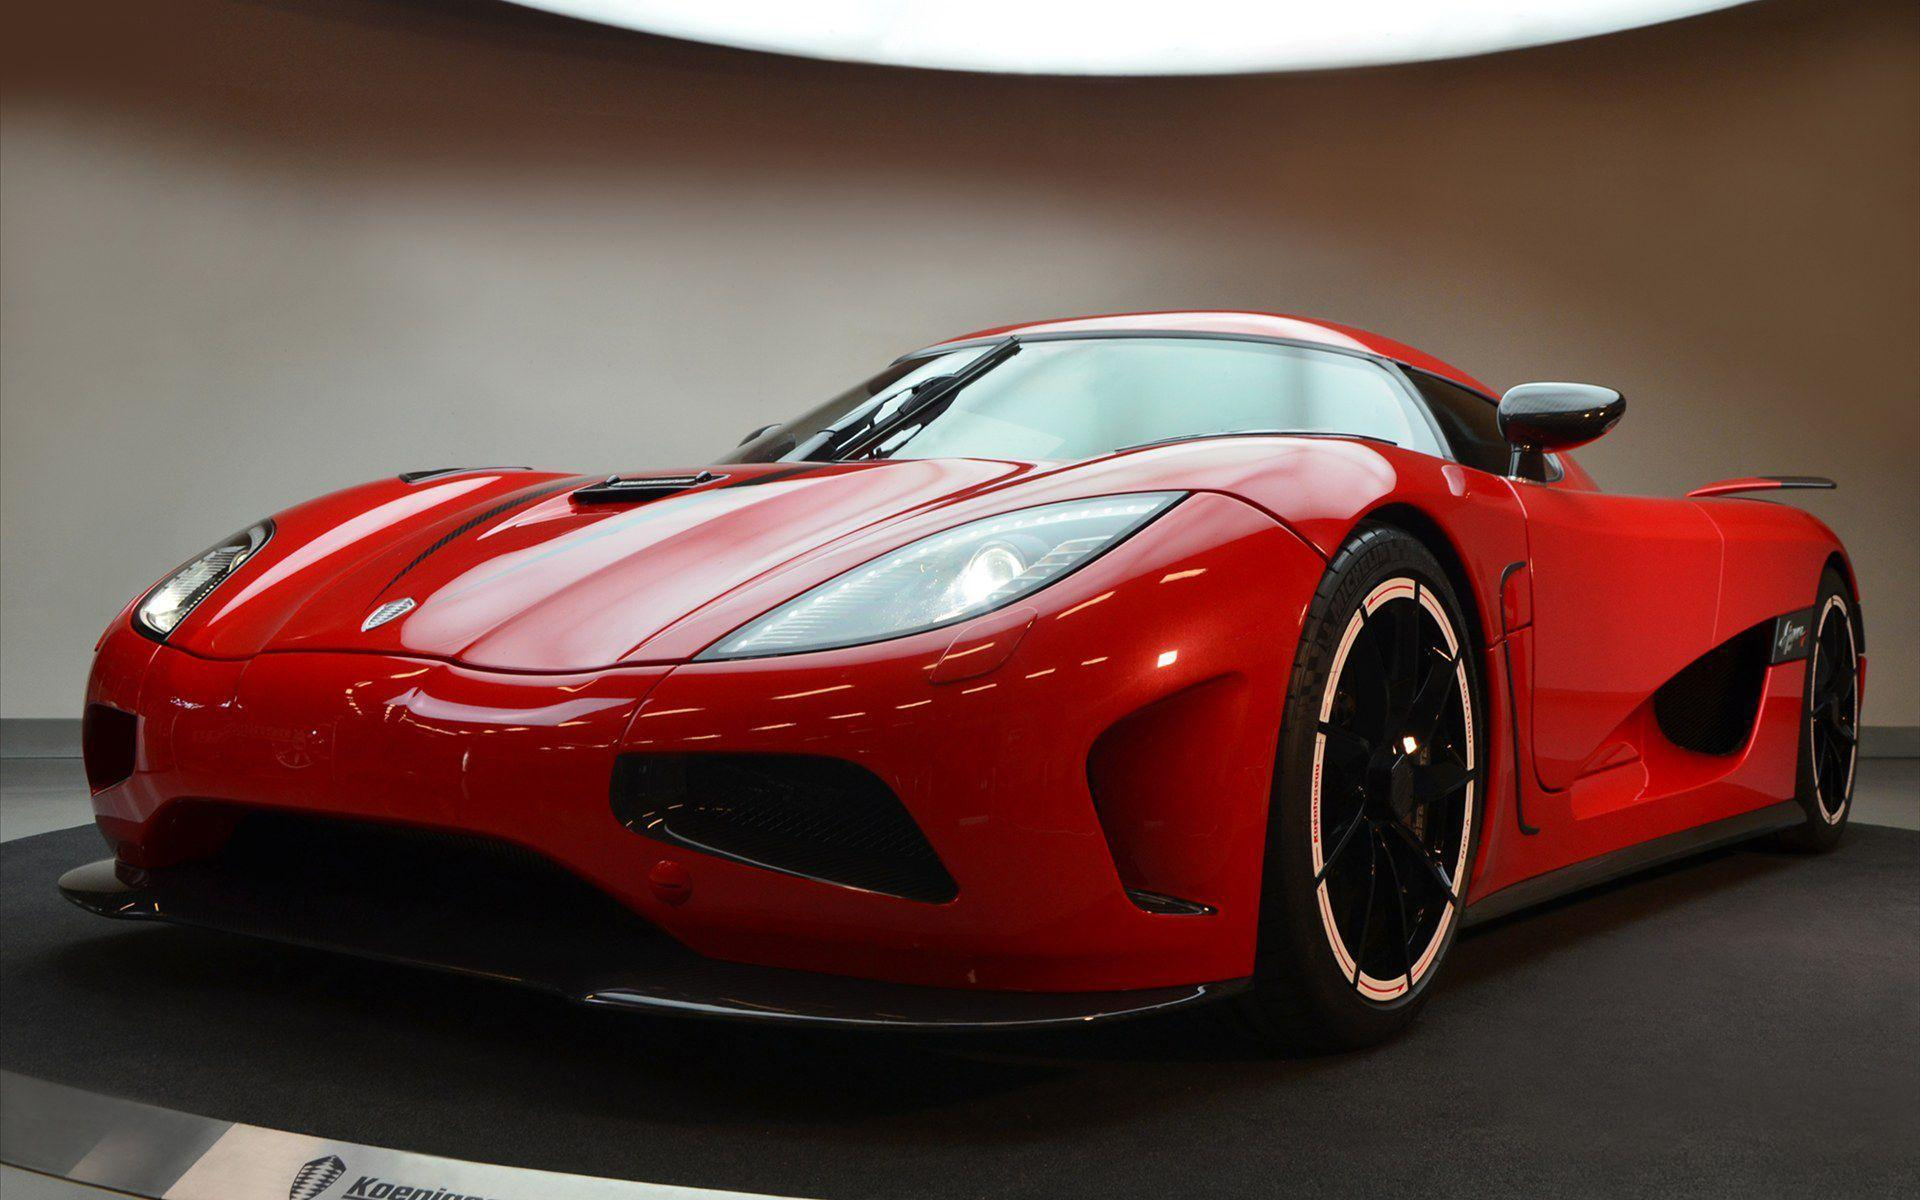 2013 Koenigsegg Agera R Wallpaper | HD Car Wallpapers